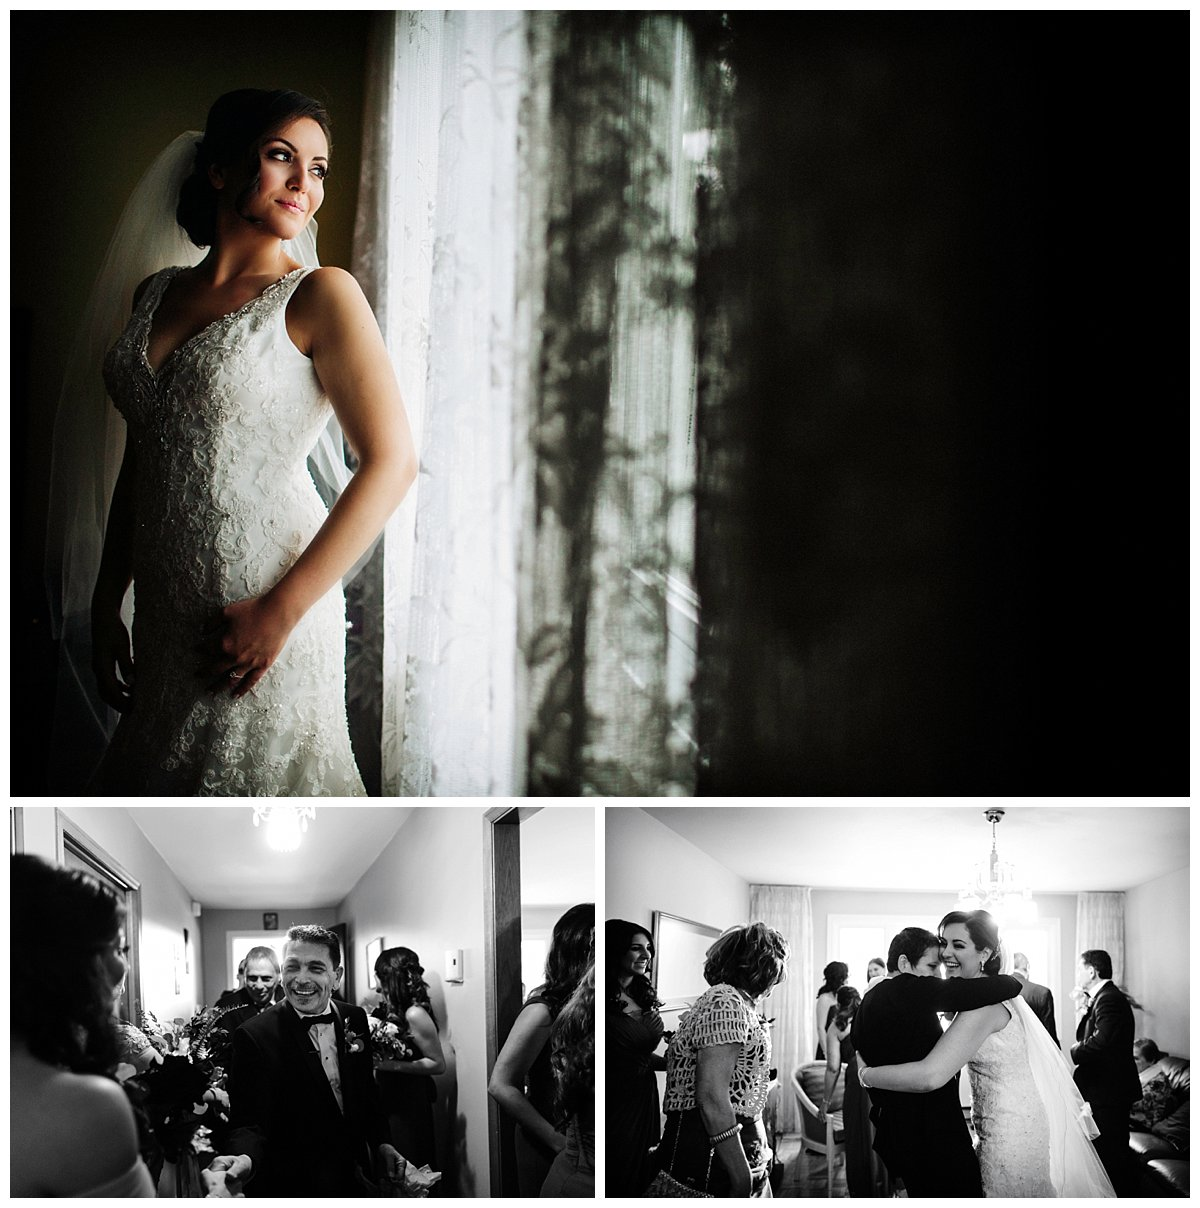 candid wedding photographers montreal